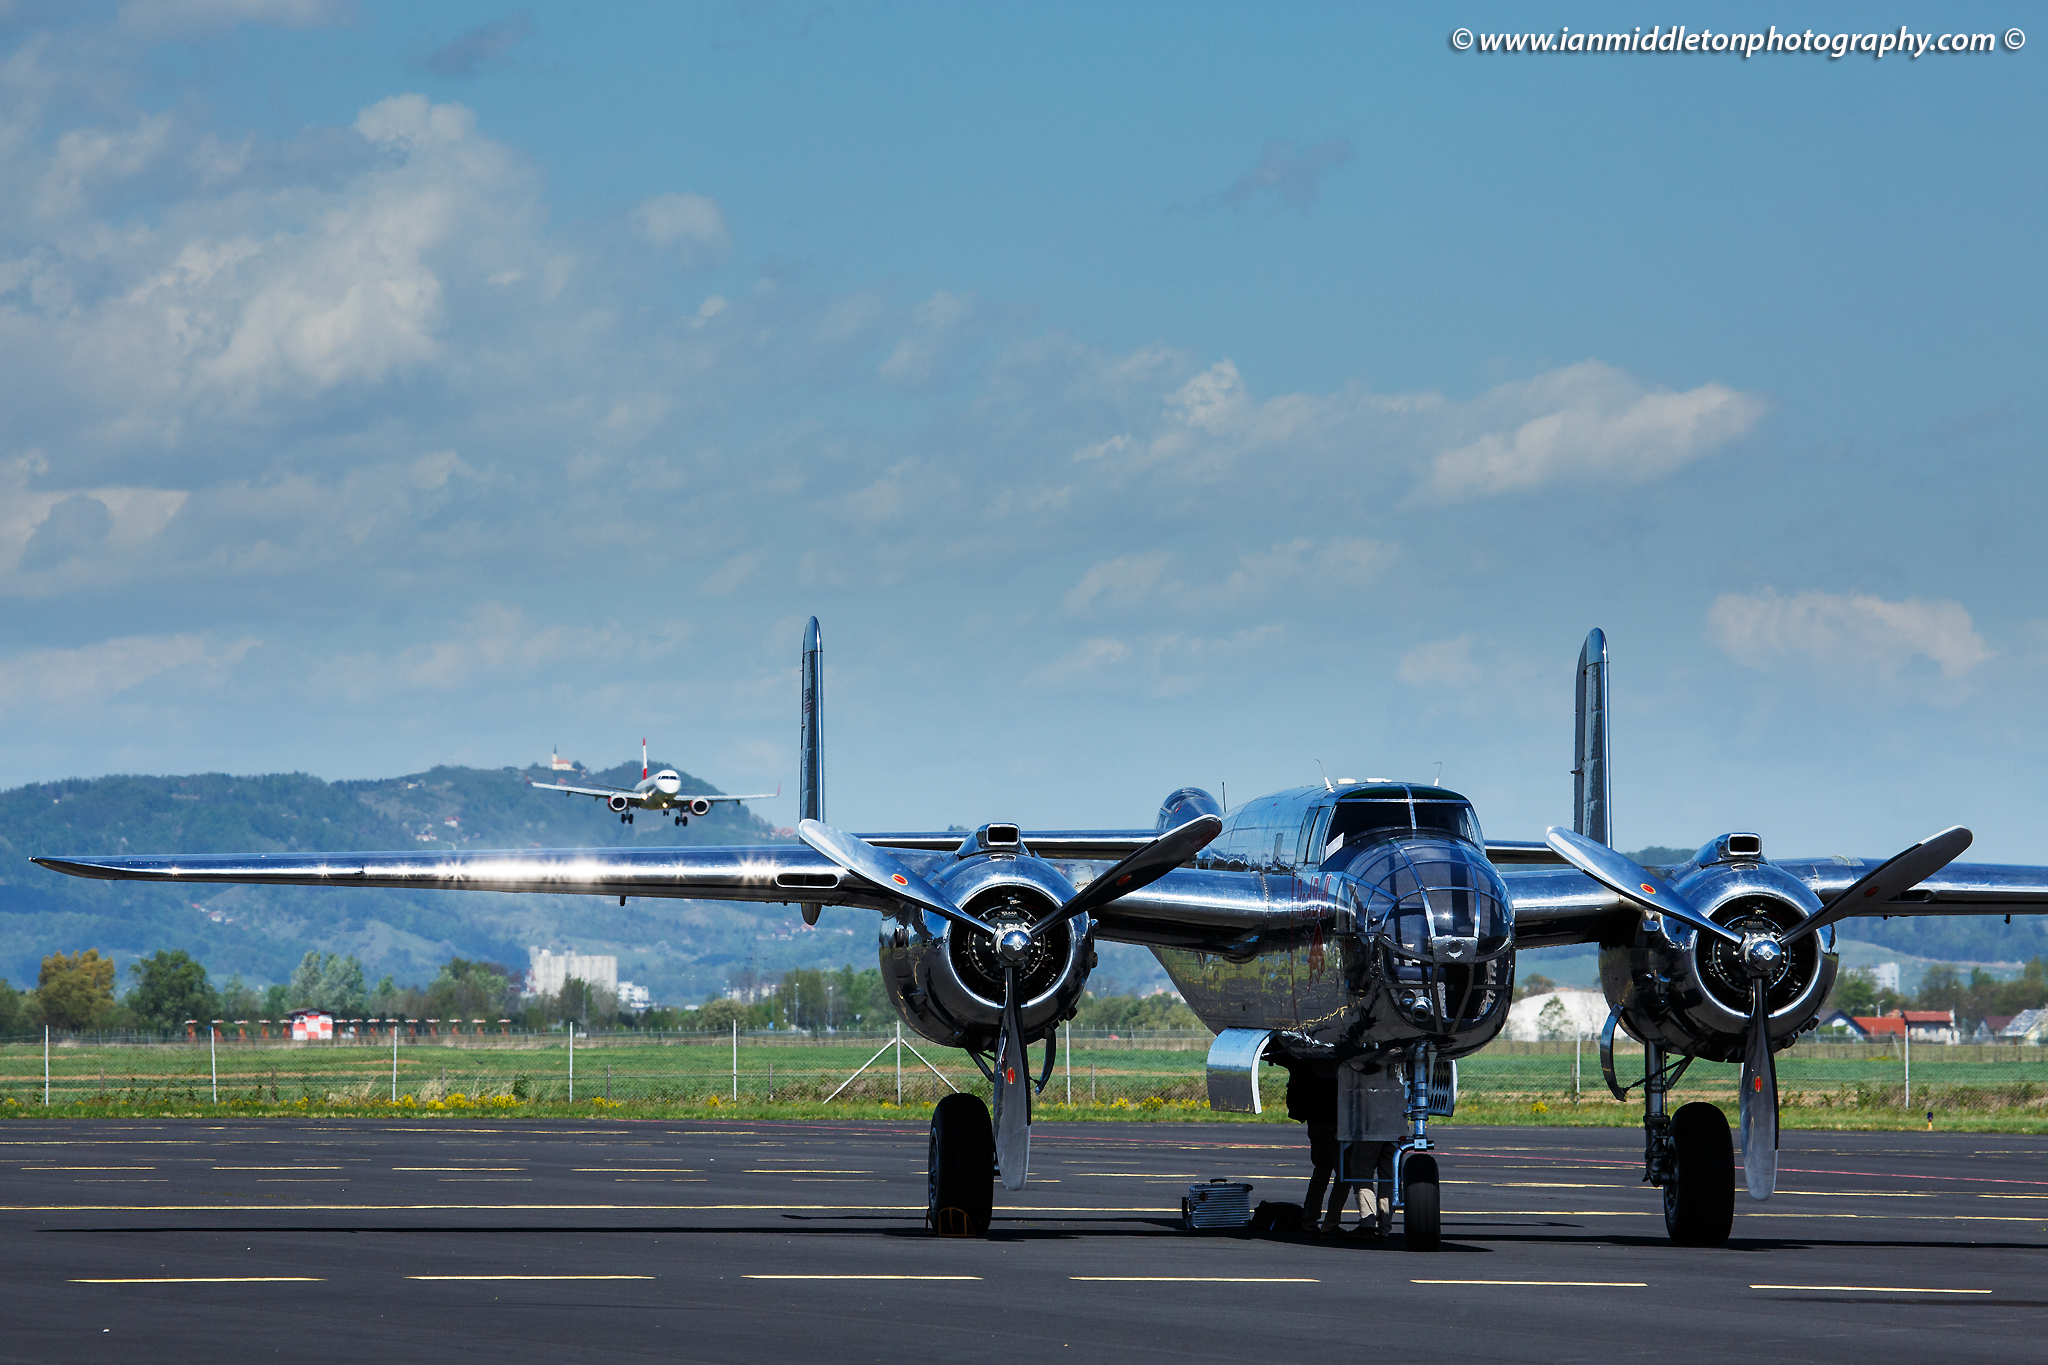 Bomber at the Red Bull open day at Maribor Edvard Rusjan Airport, Slovenia. Austria Airlines is landing in the background